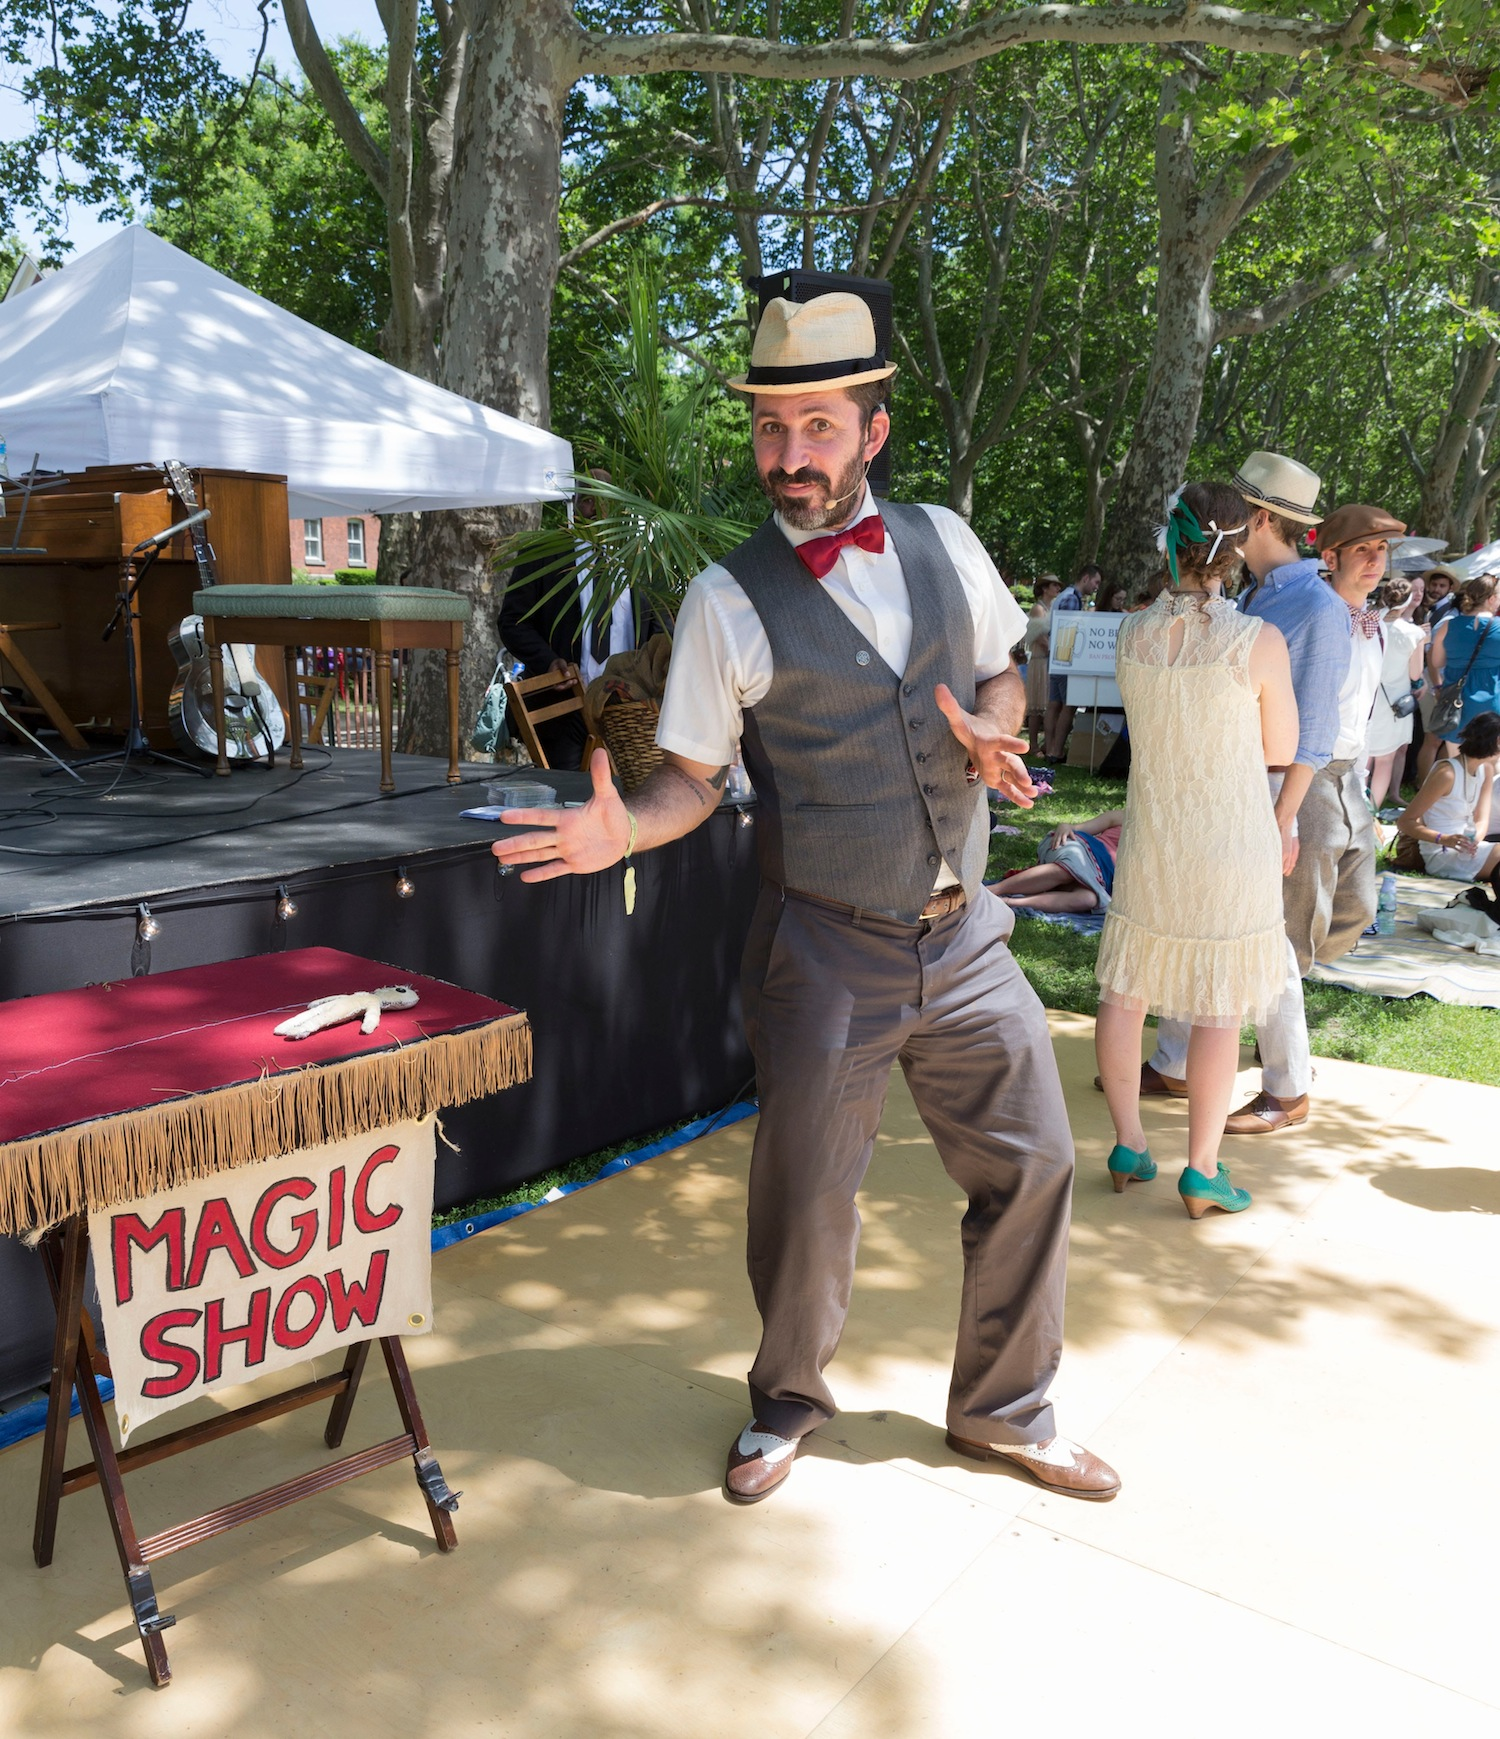 image: A magician at the Jazz Age Lawn Party (credit: lev radin)